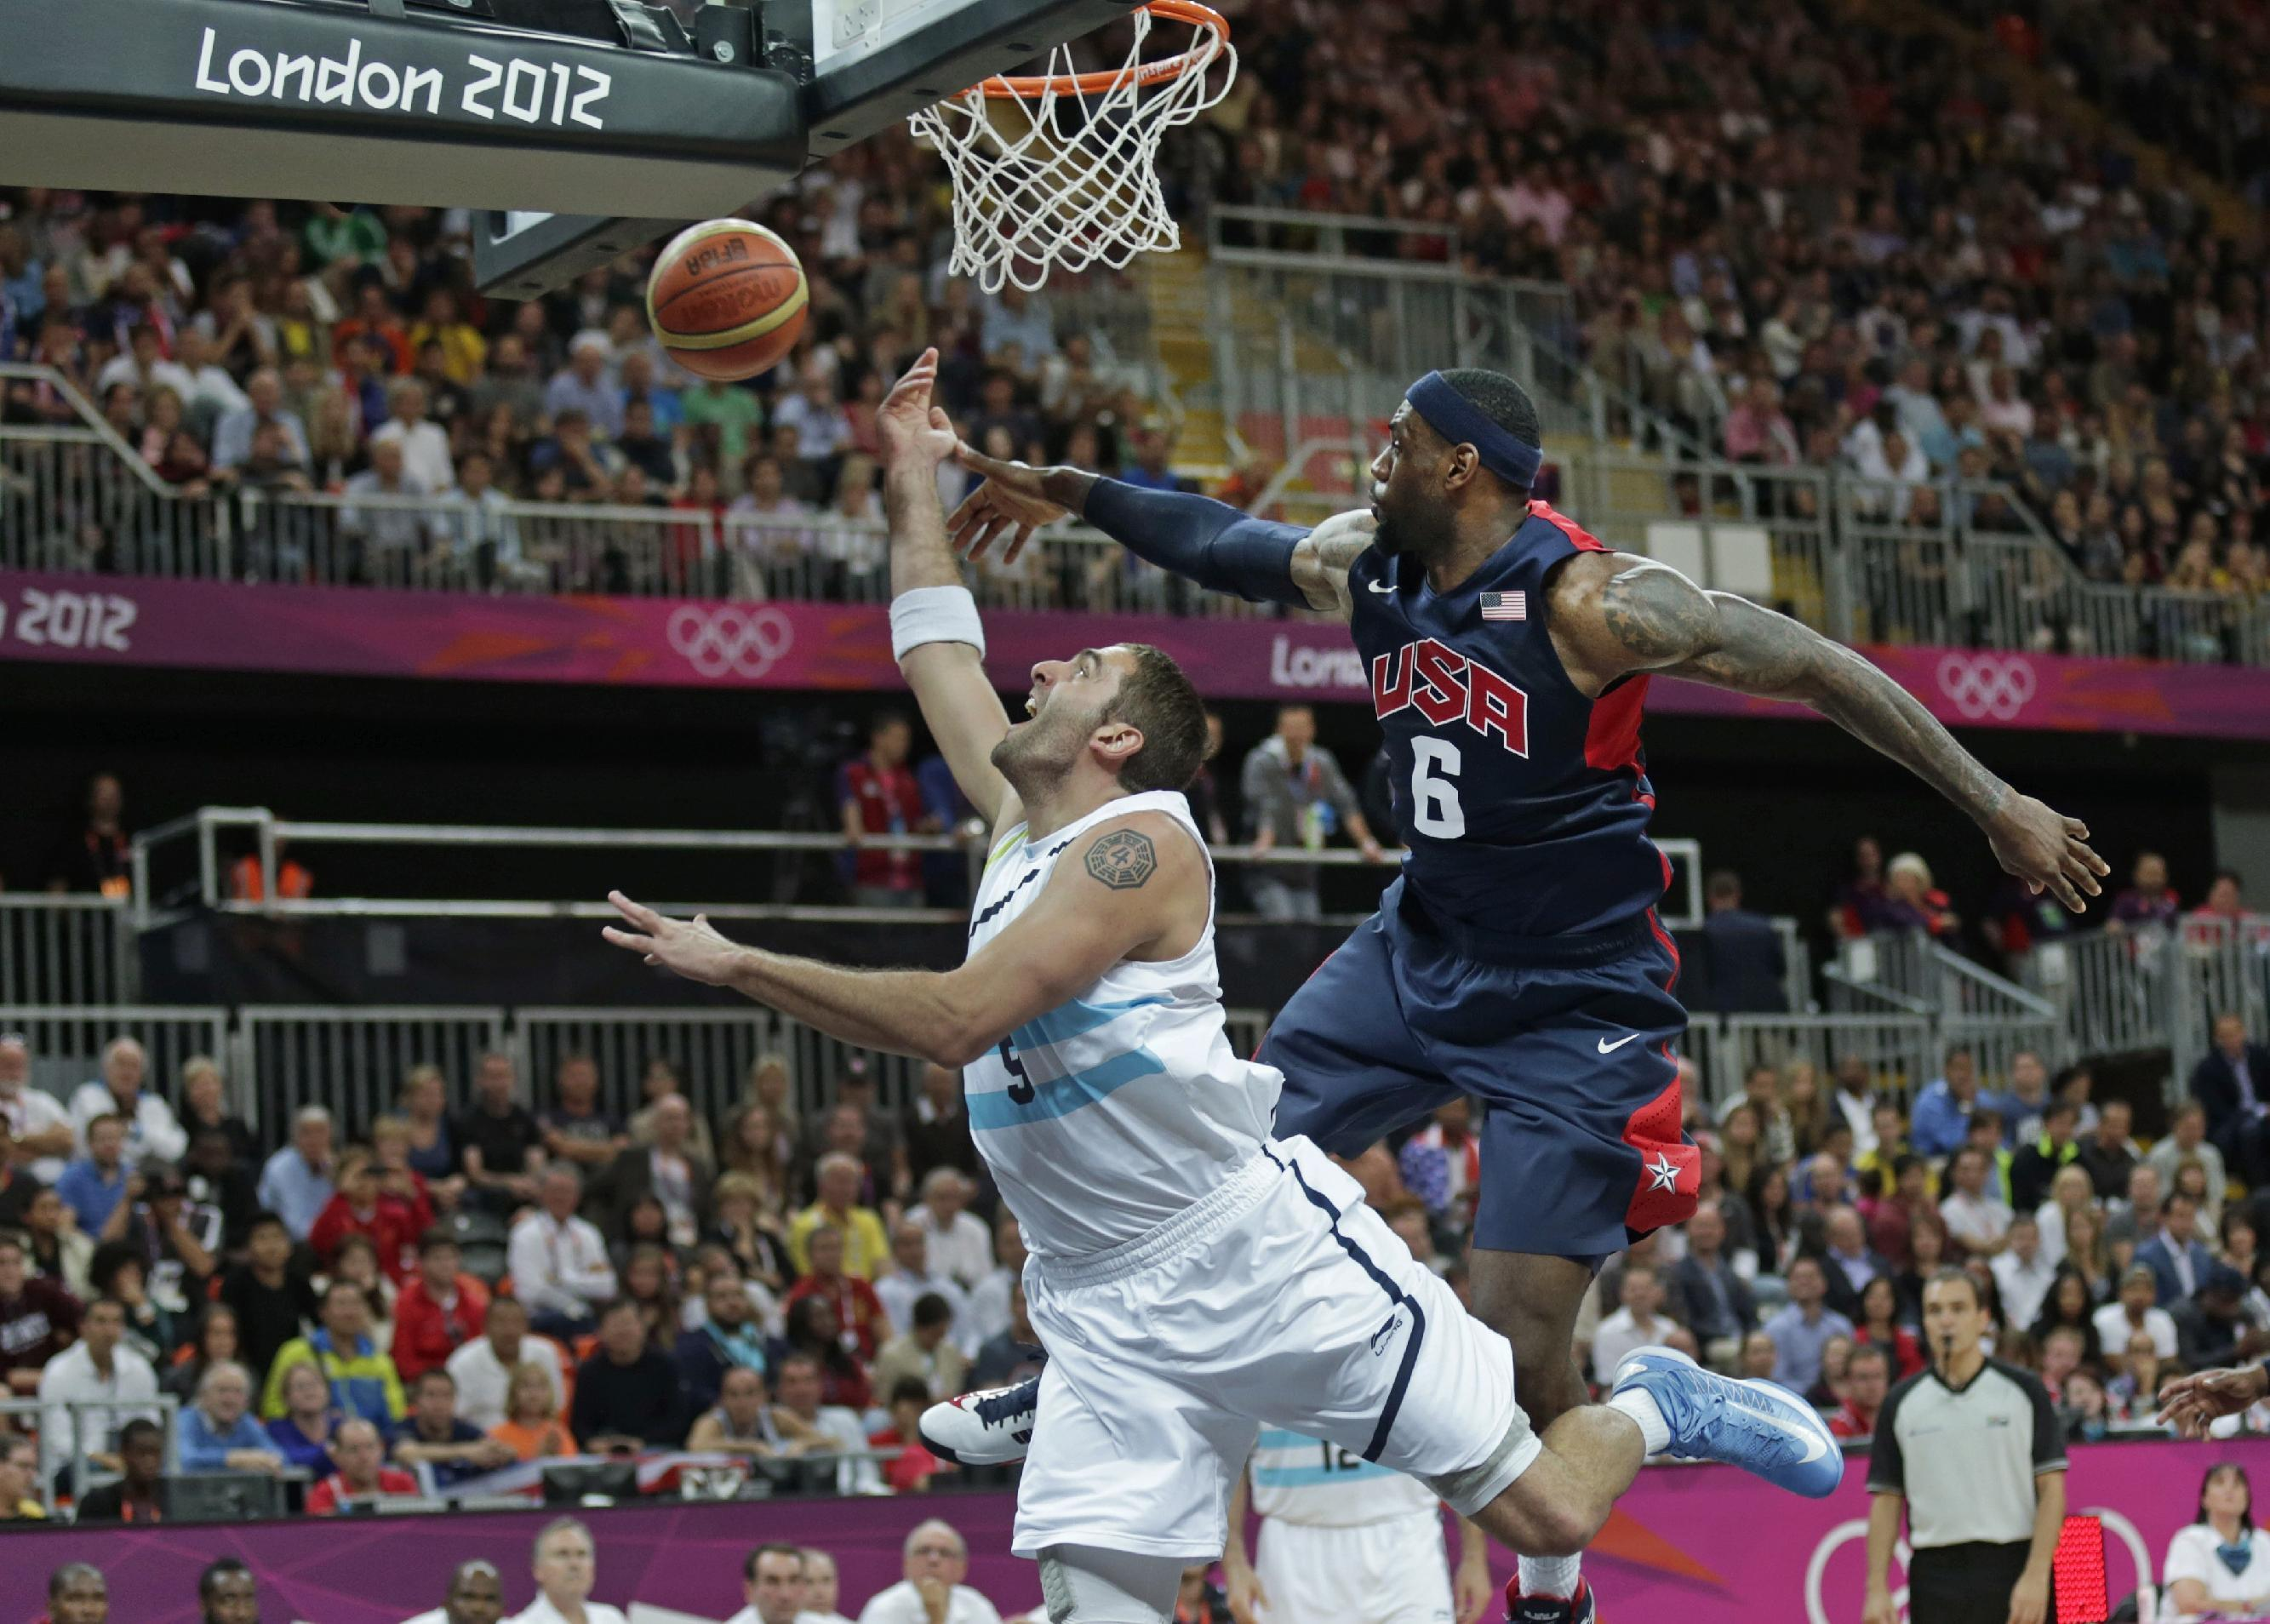 USA's Lebron James (6) fouls Argentina's Juan Gutierrez on a drive to the basket during a men's basketball game at the 2012 Summer Olympics, Monday, Aug. 6, 2012, in London. (AP Photo/Charles Krupa)